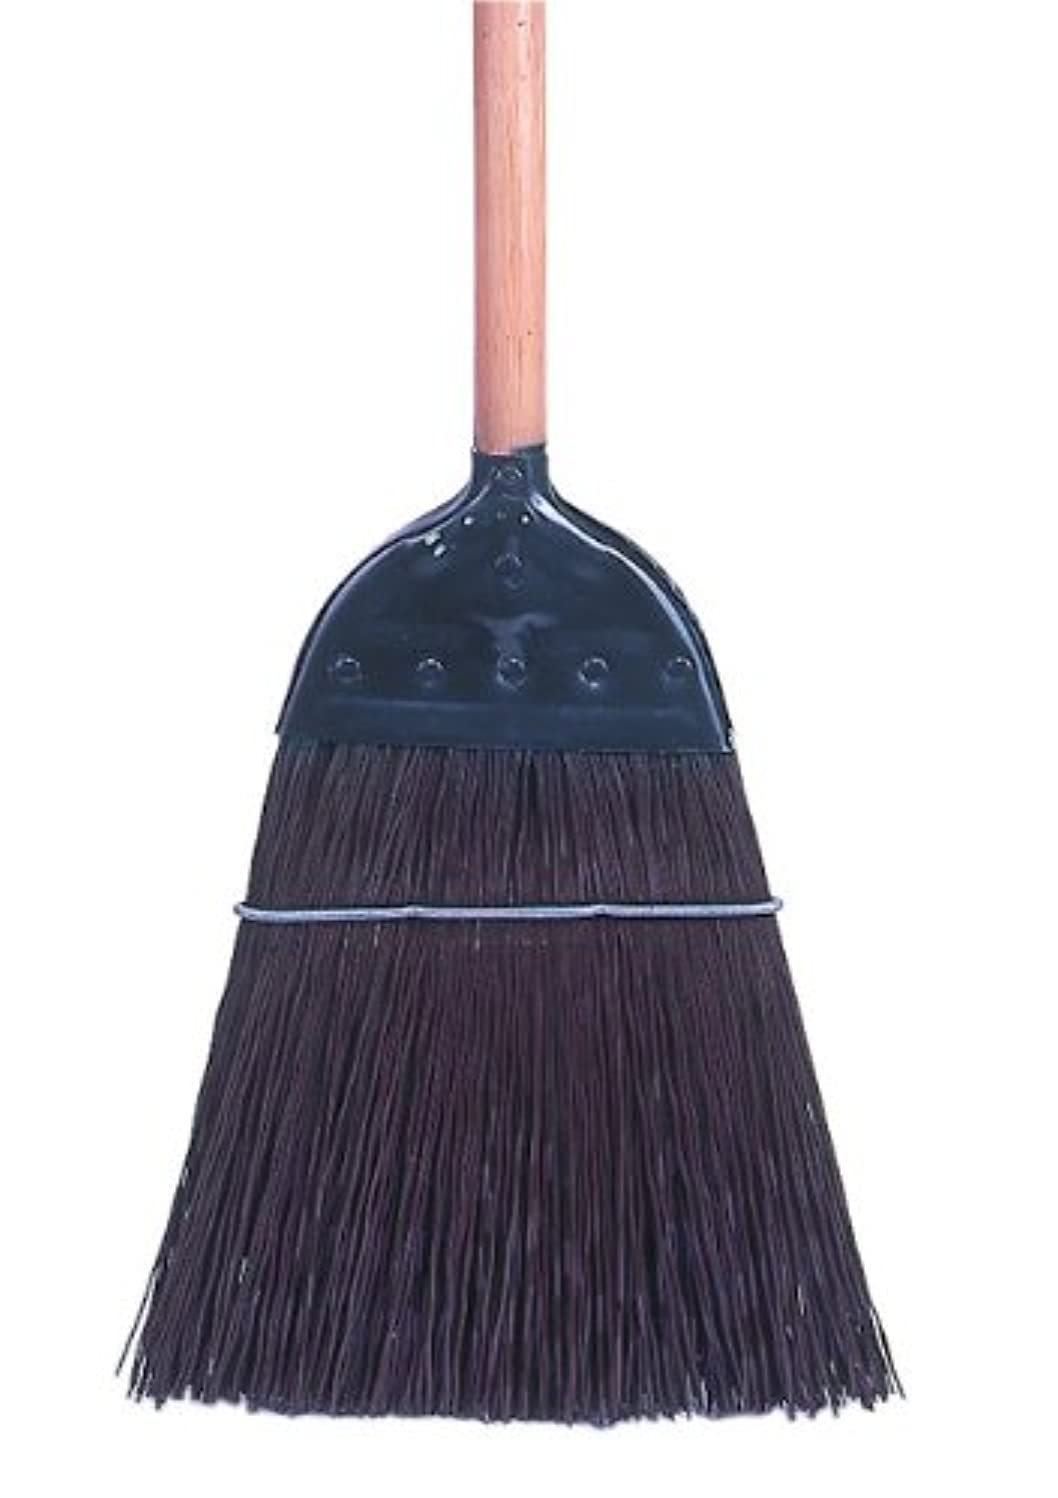 Weiler 44007 Palmyra Fiber Upright and Whisk Cap Broom with Wood Handle, 1-1/2